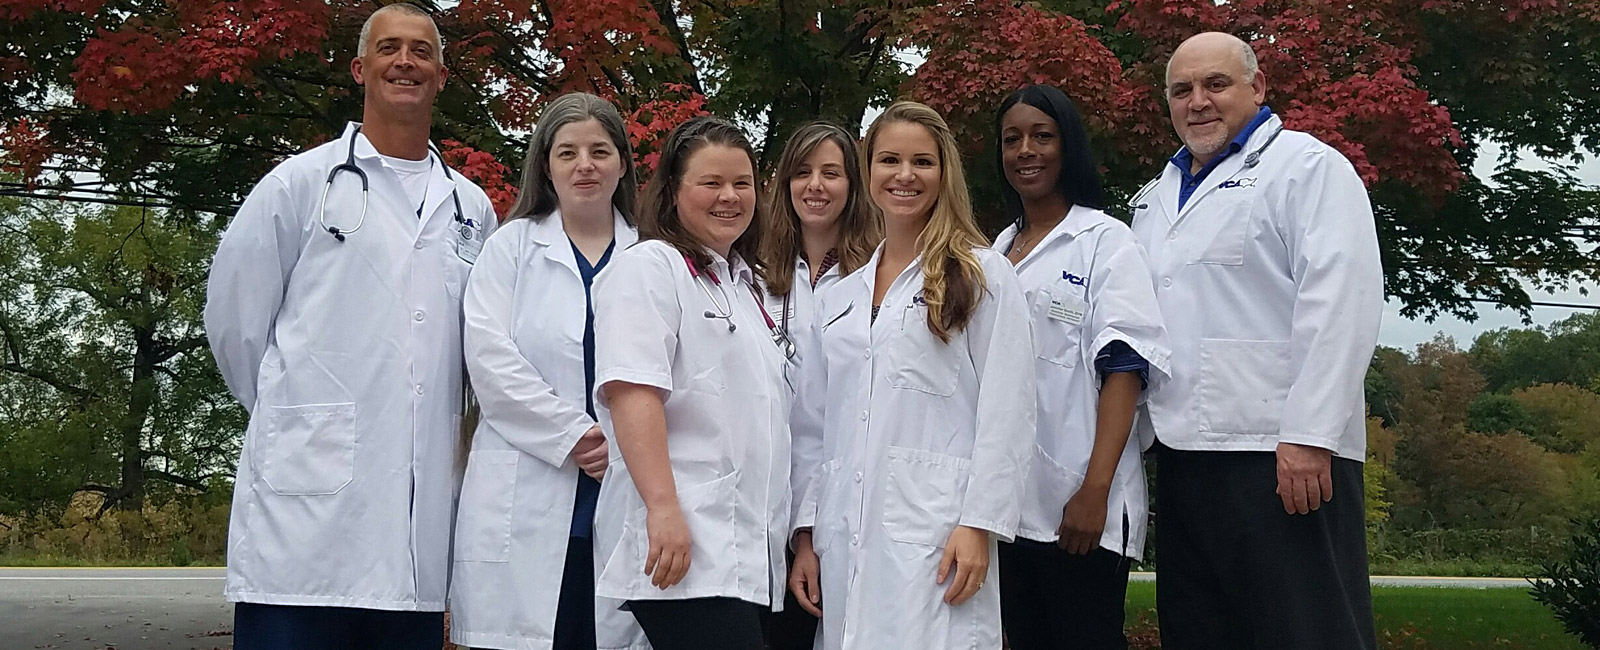 Team Picture of VCA Lewis Animal Hospital